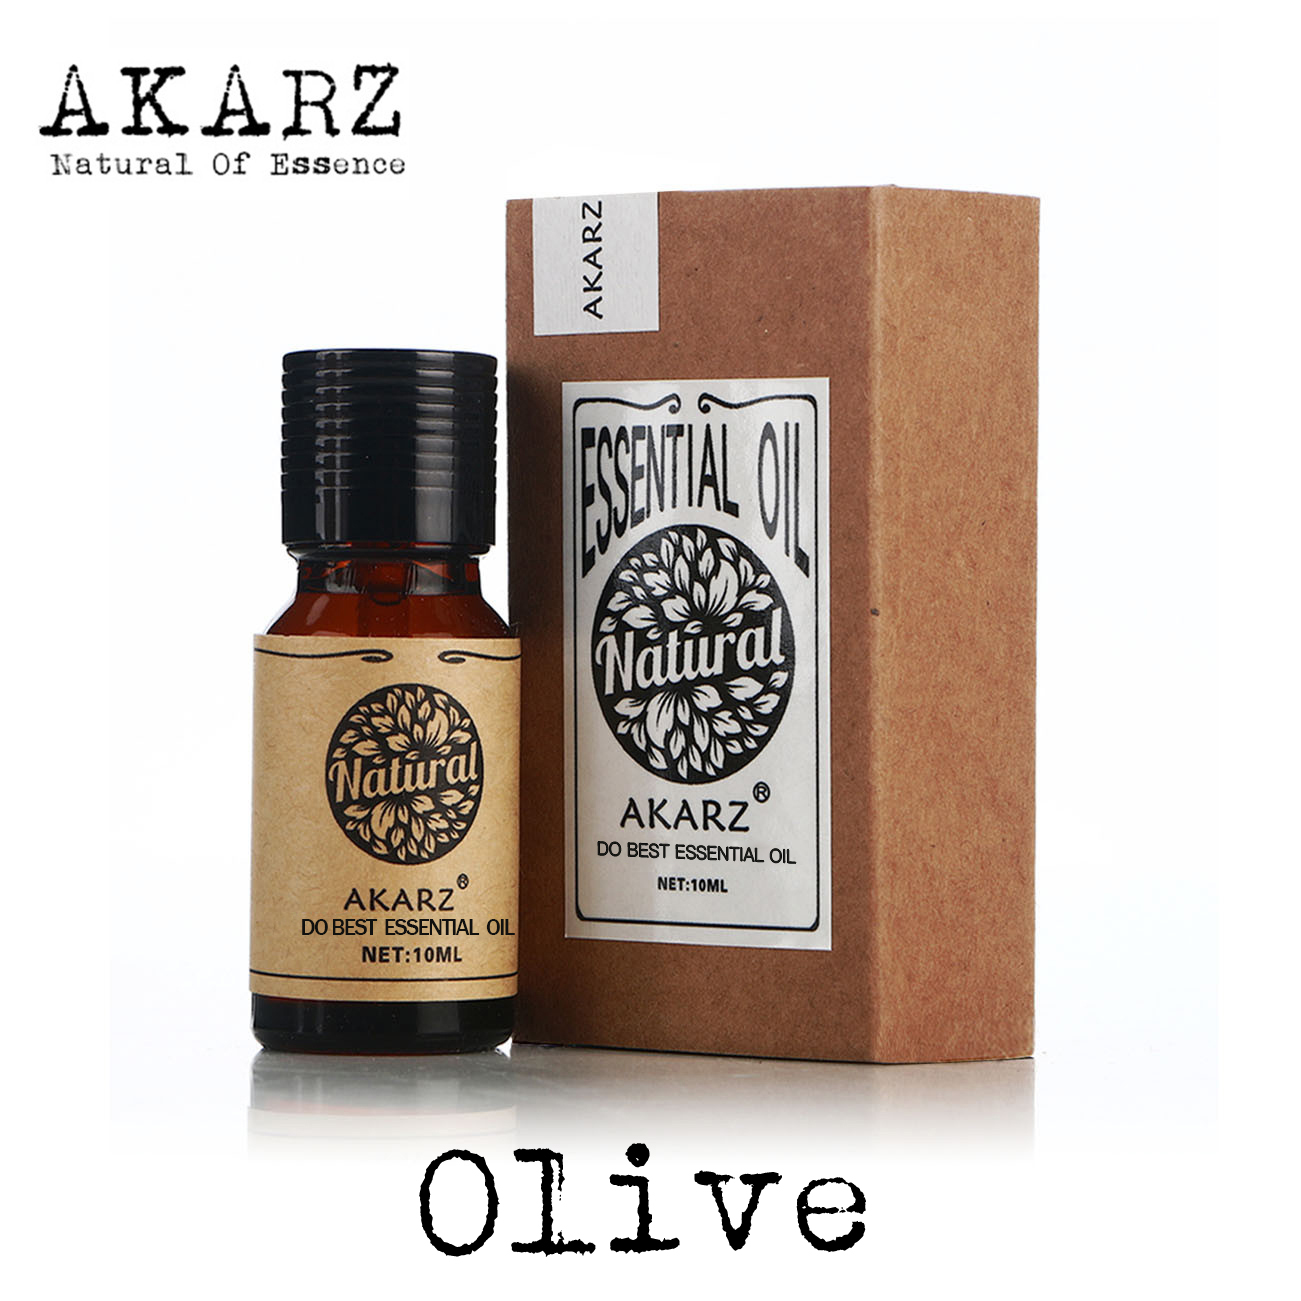 Olive oil AKARZ Top Brand body face skin care spa message fragrance lamp Aromatherapy Olive Carrier oil image